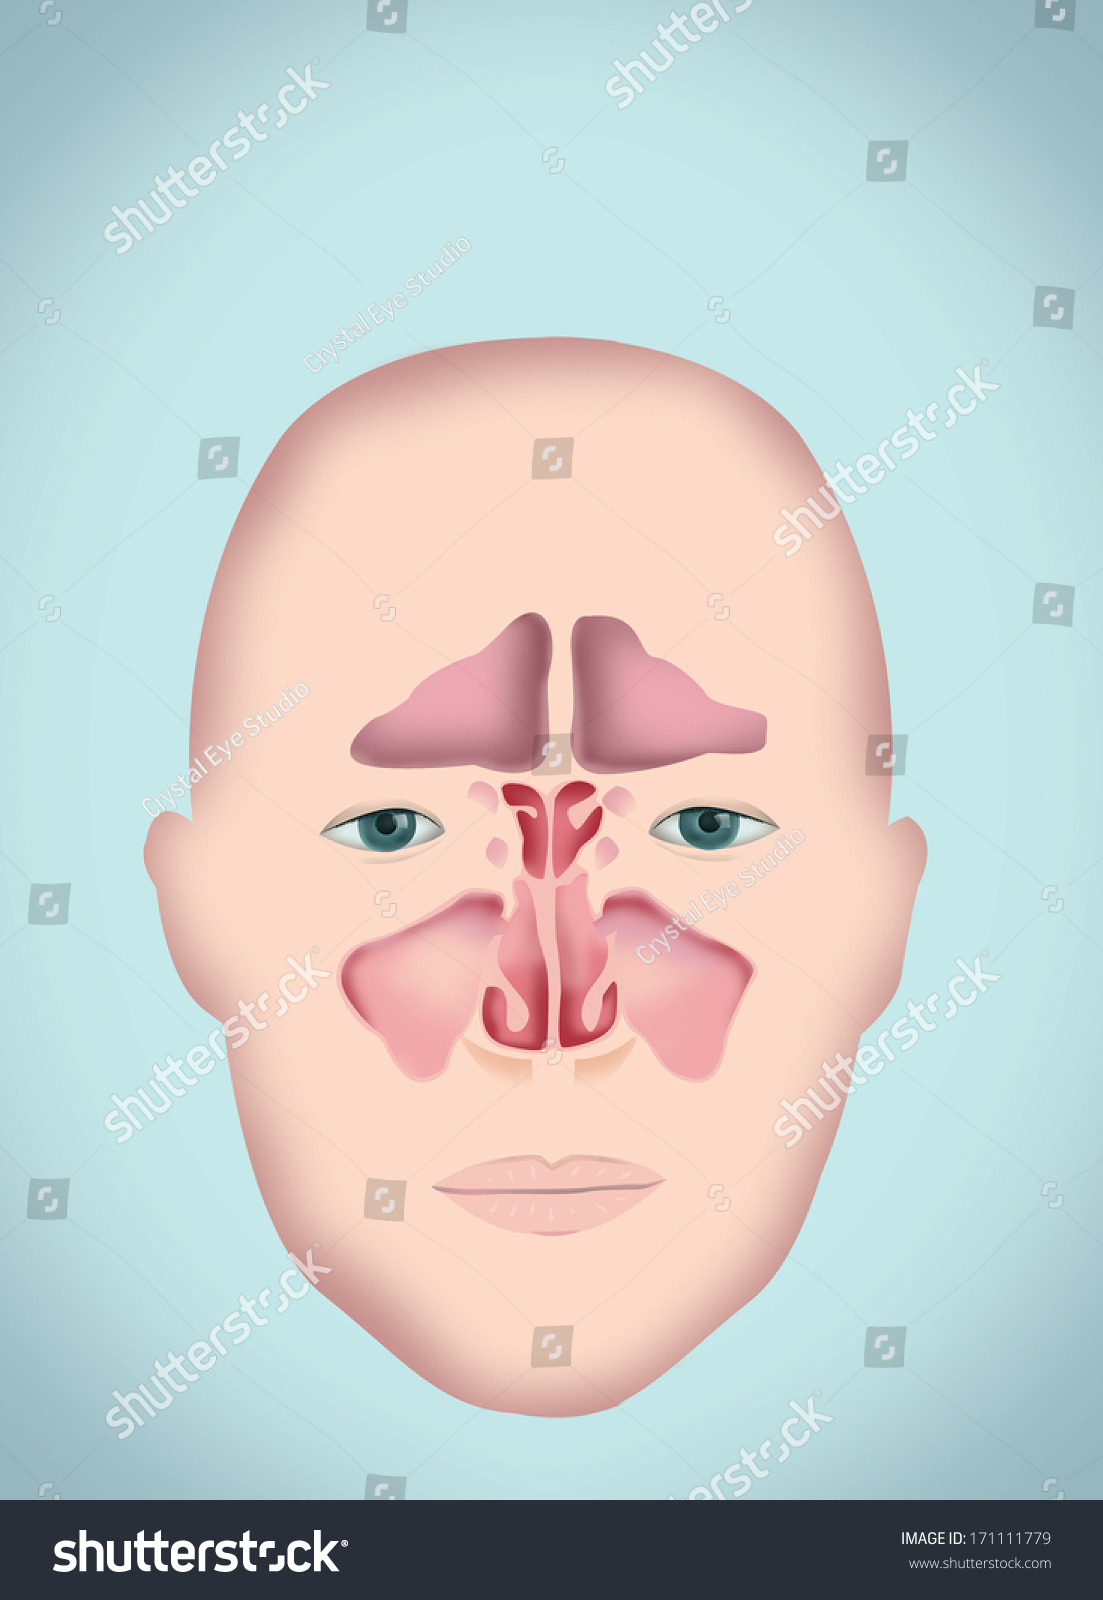 Sinus Diagram Human Anatomy Without Labels Stock Illustration ...